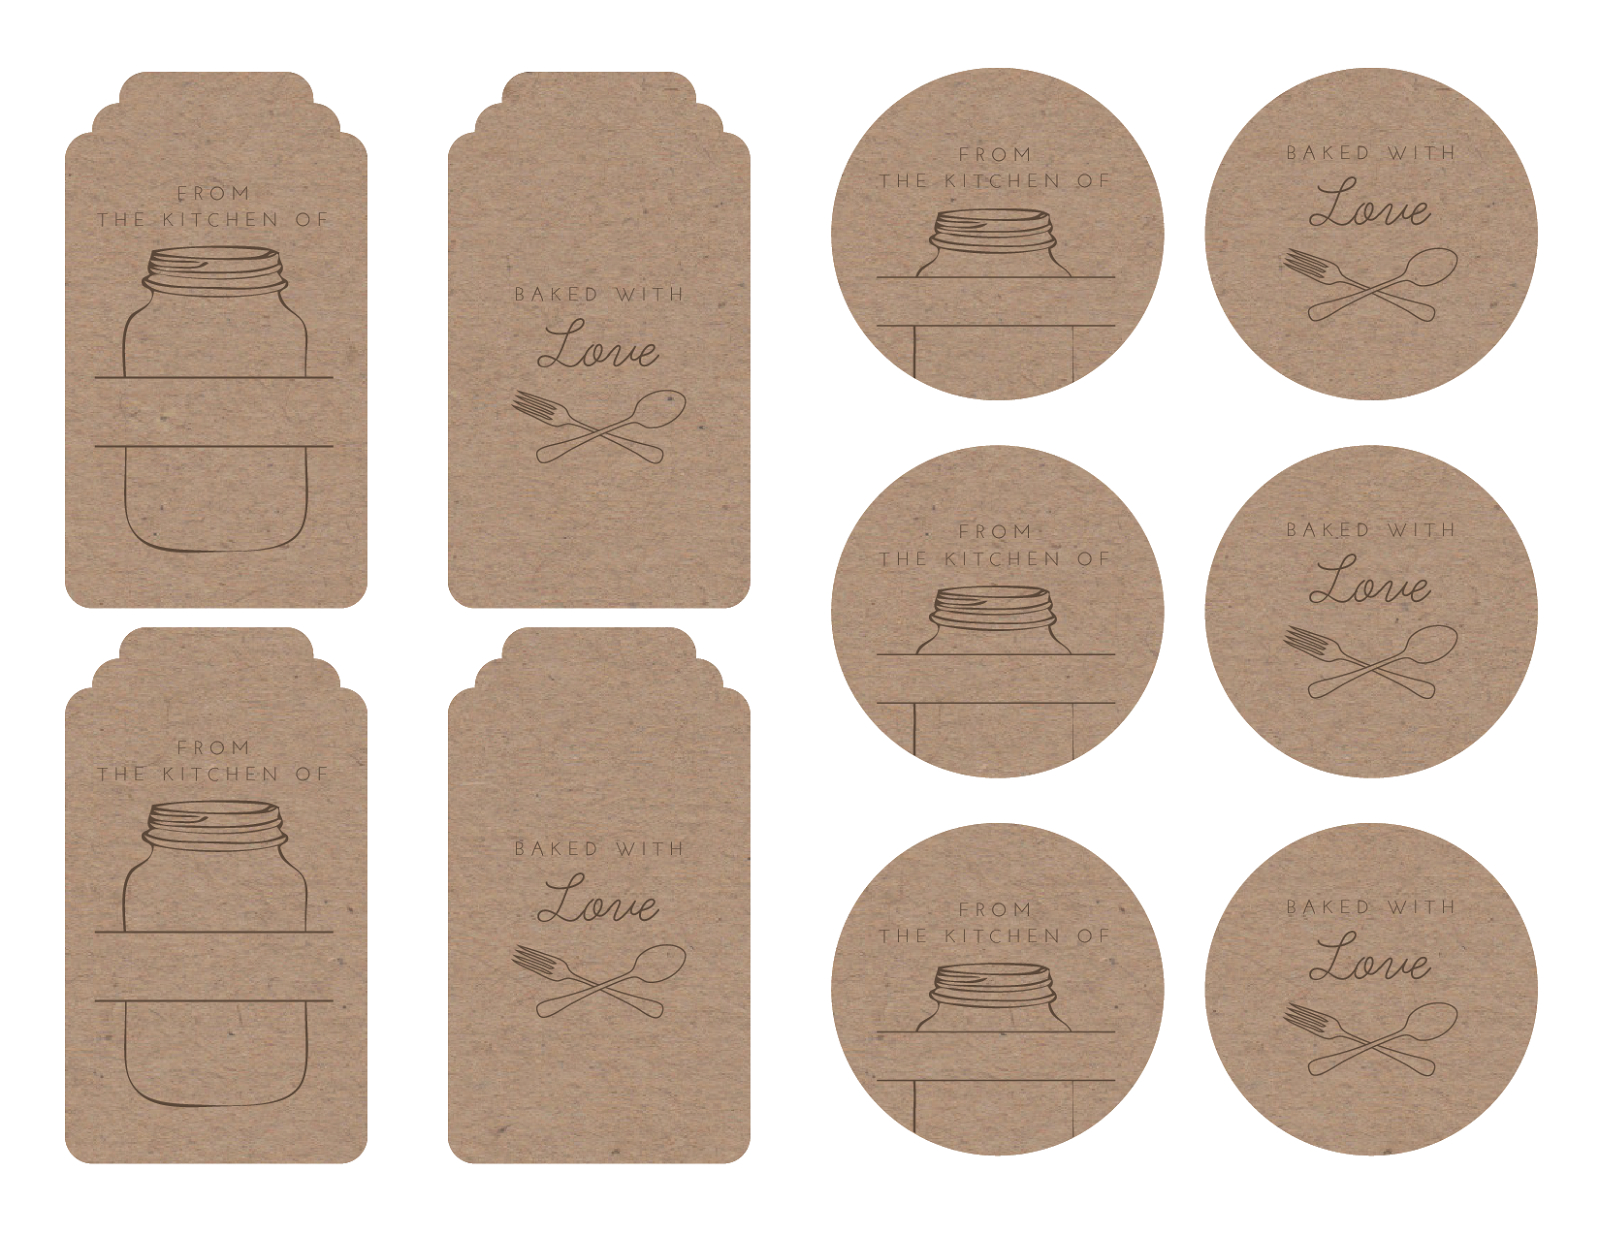 Homemade Tags For Your Baked Goods | Printables & Graphics - Free Printable Baking Labels